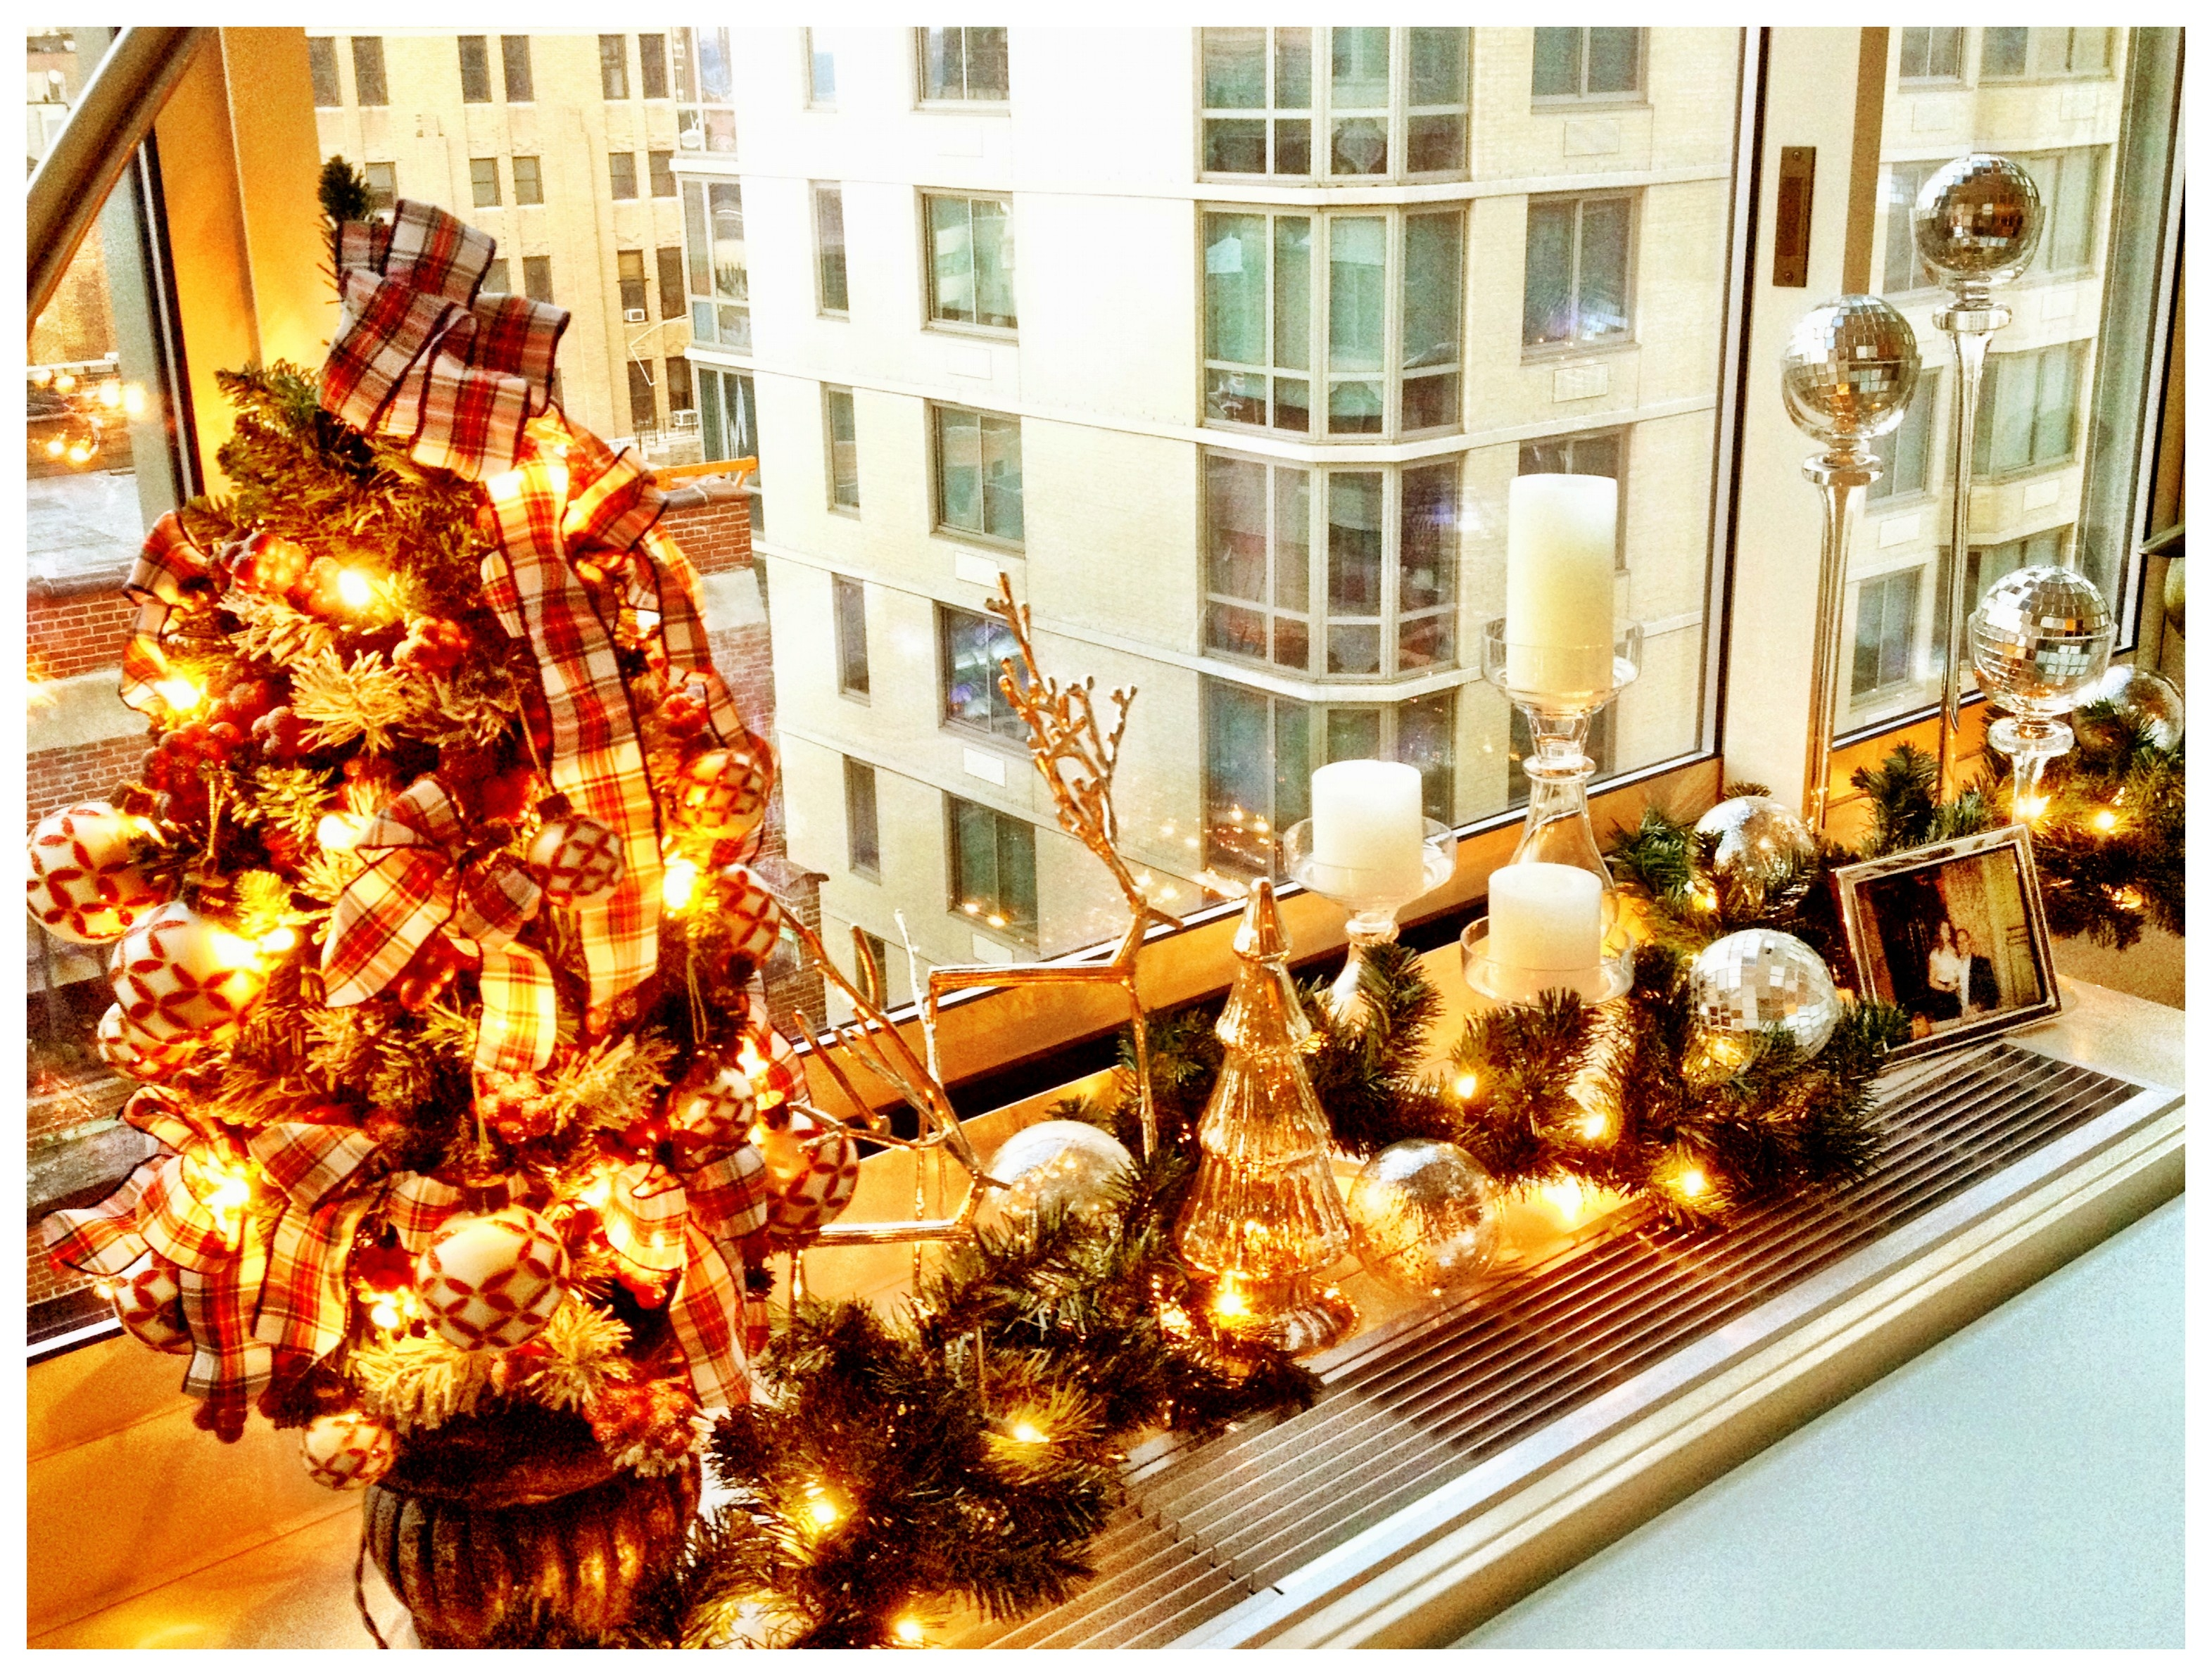 Christmas fat girl in new york - Christmas decorations small apartments ...